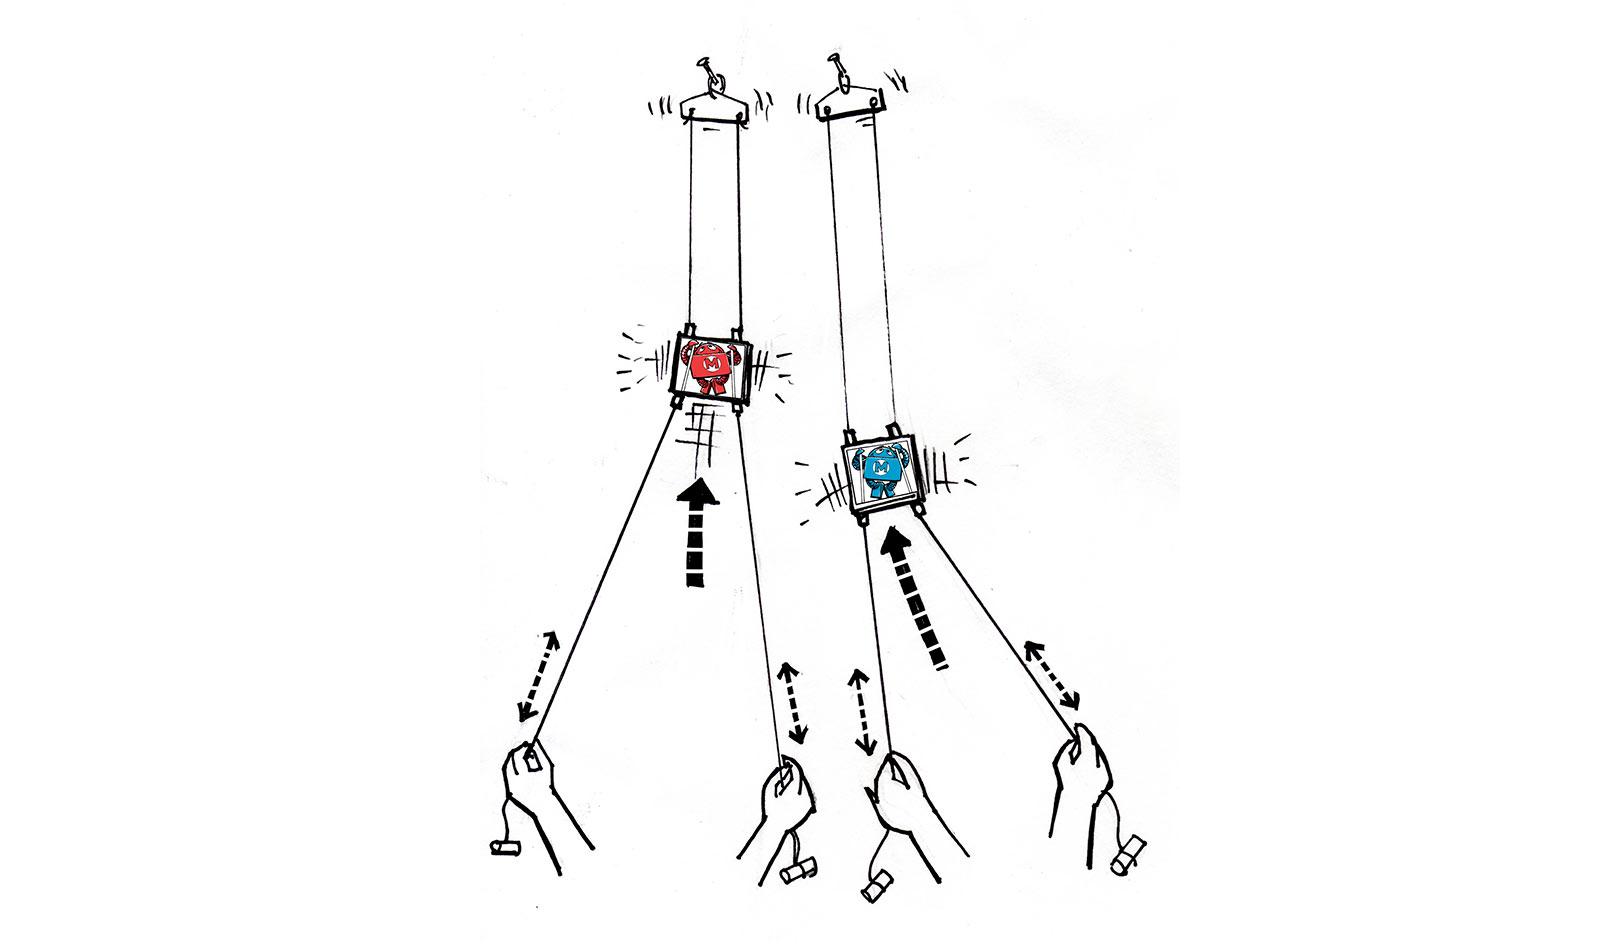 Race a Friend with These Traditional String Climbing Toys